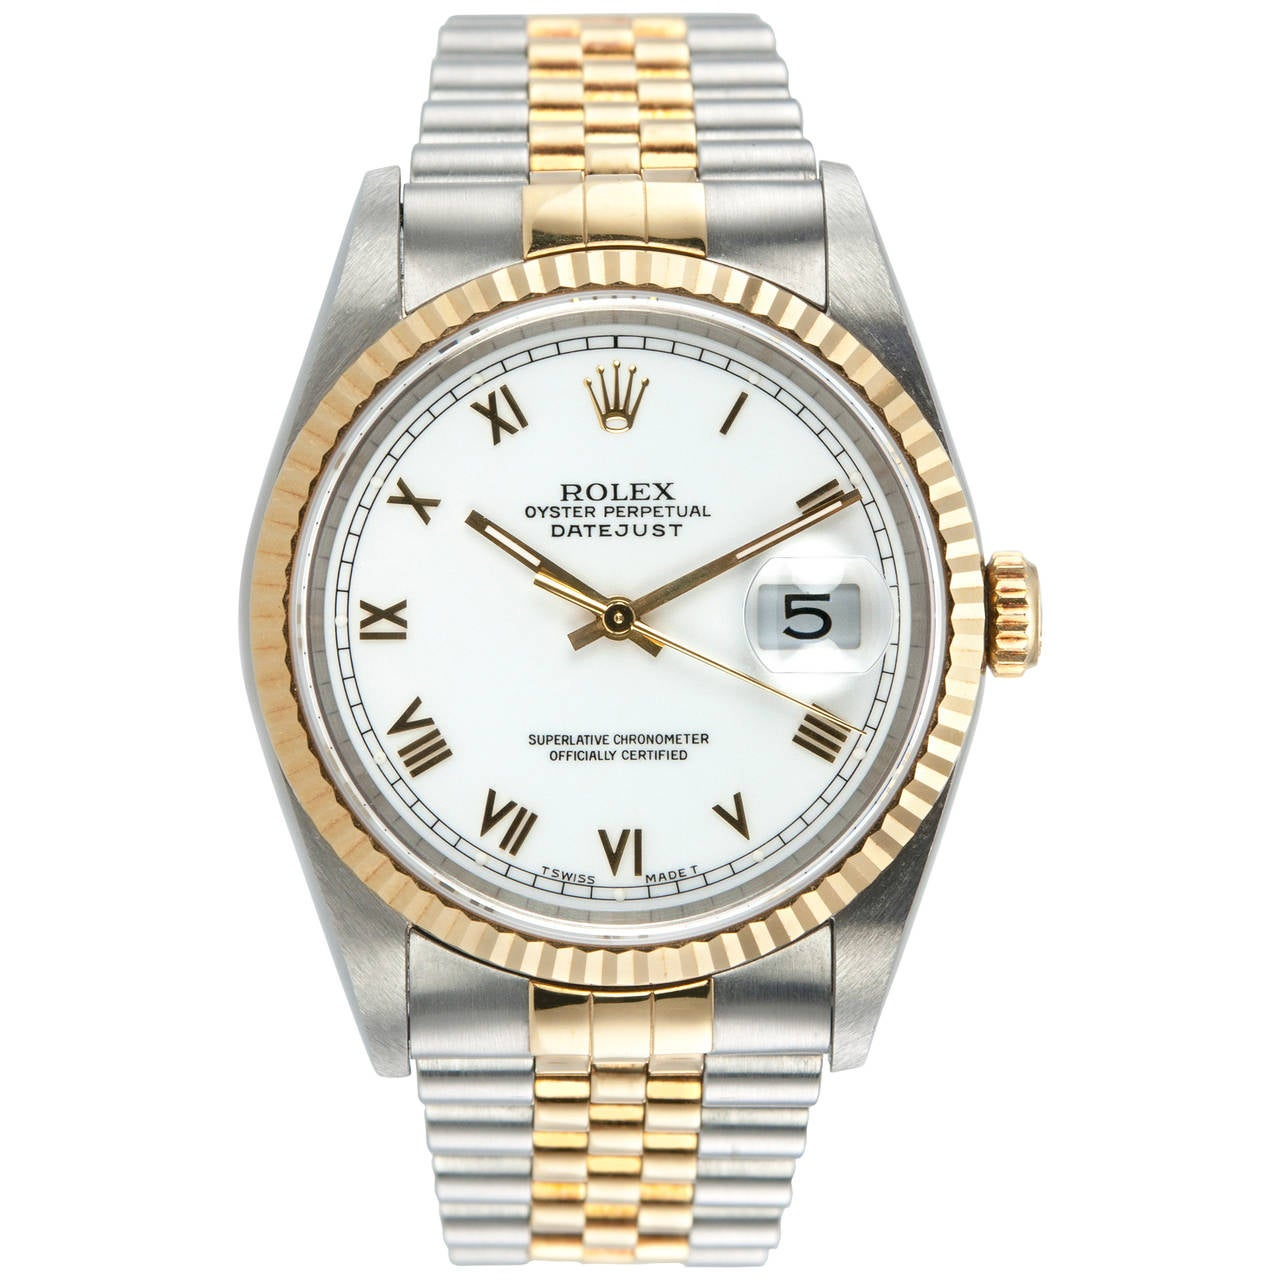 Rolex Yellow Gold Stainless Steel DateJust Wristwatch Ref 16233 1